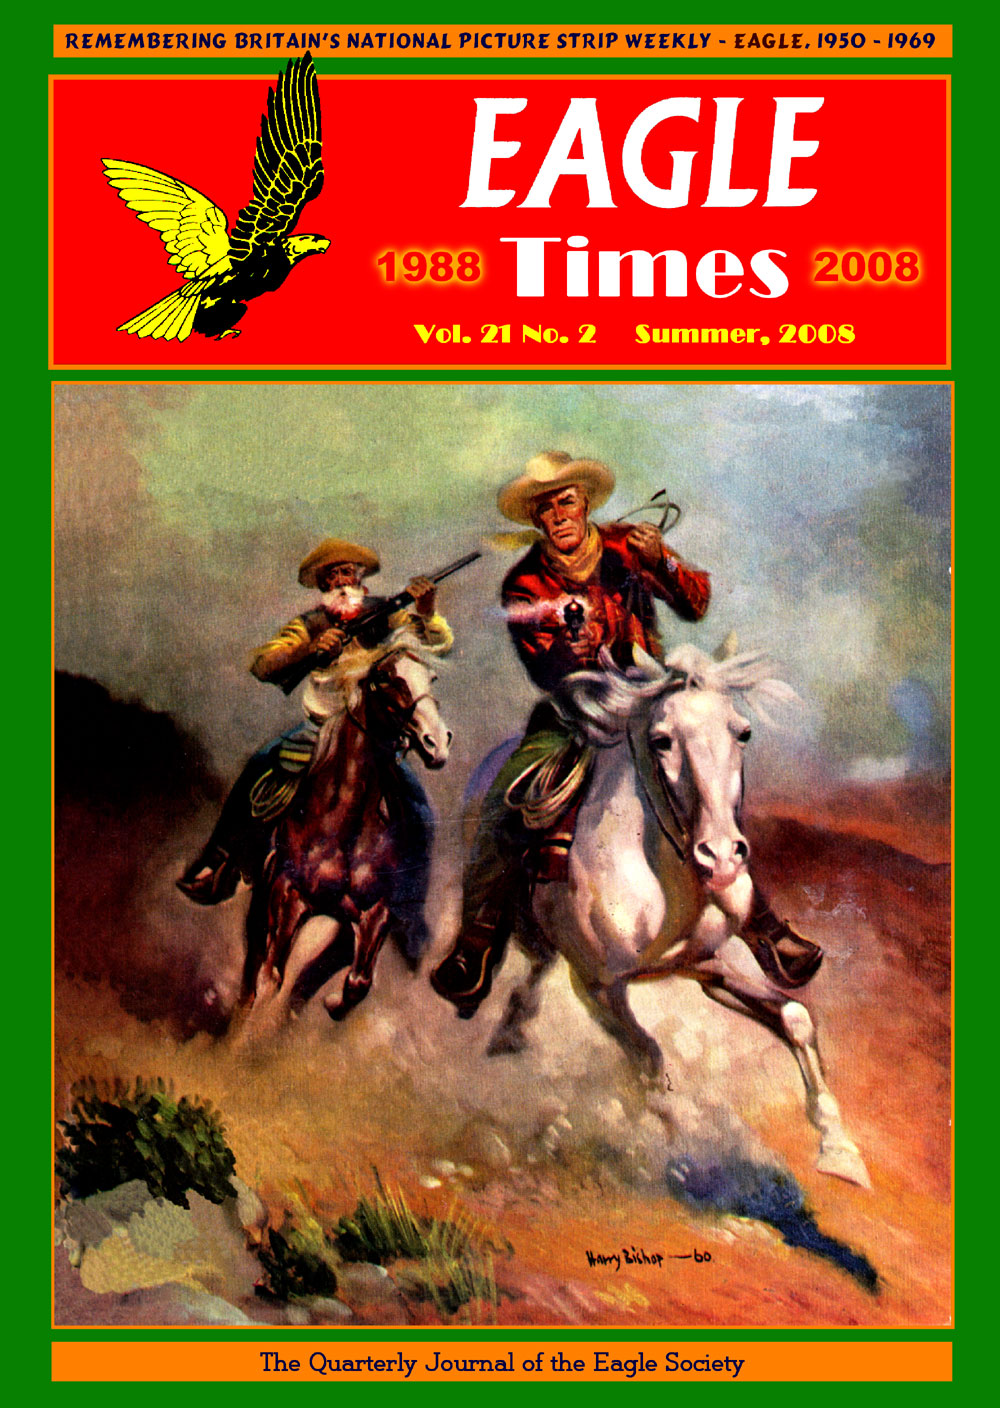 Eagle Times Volume 21 Issue 2 - Summer 2008